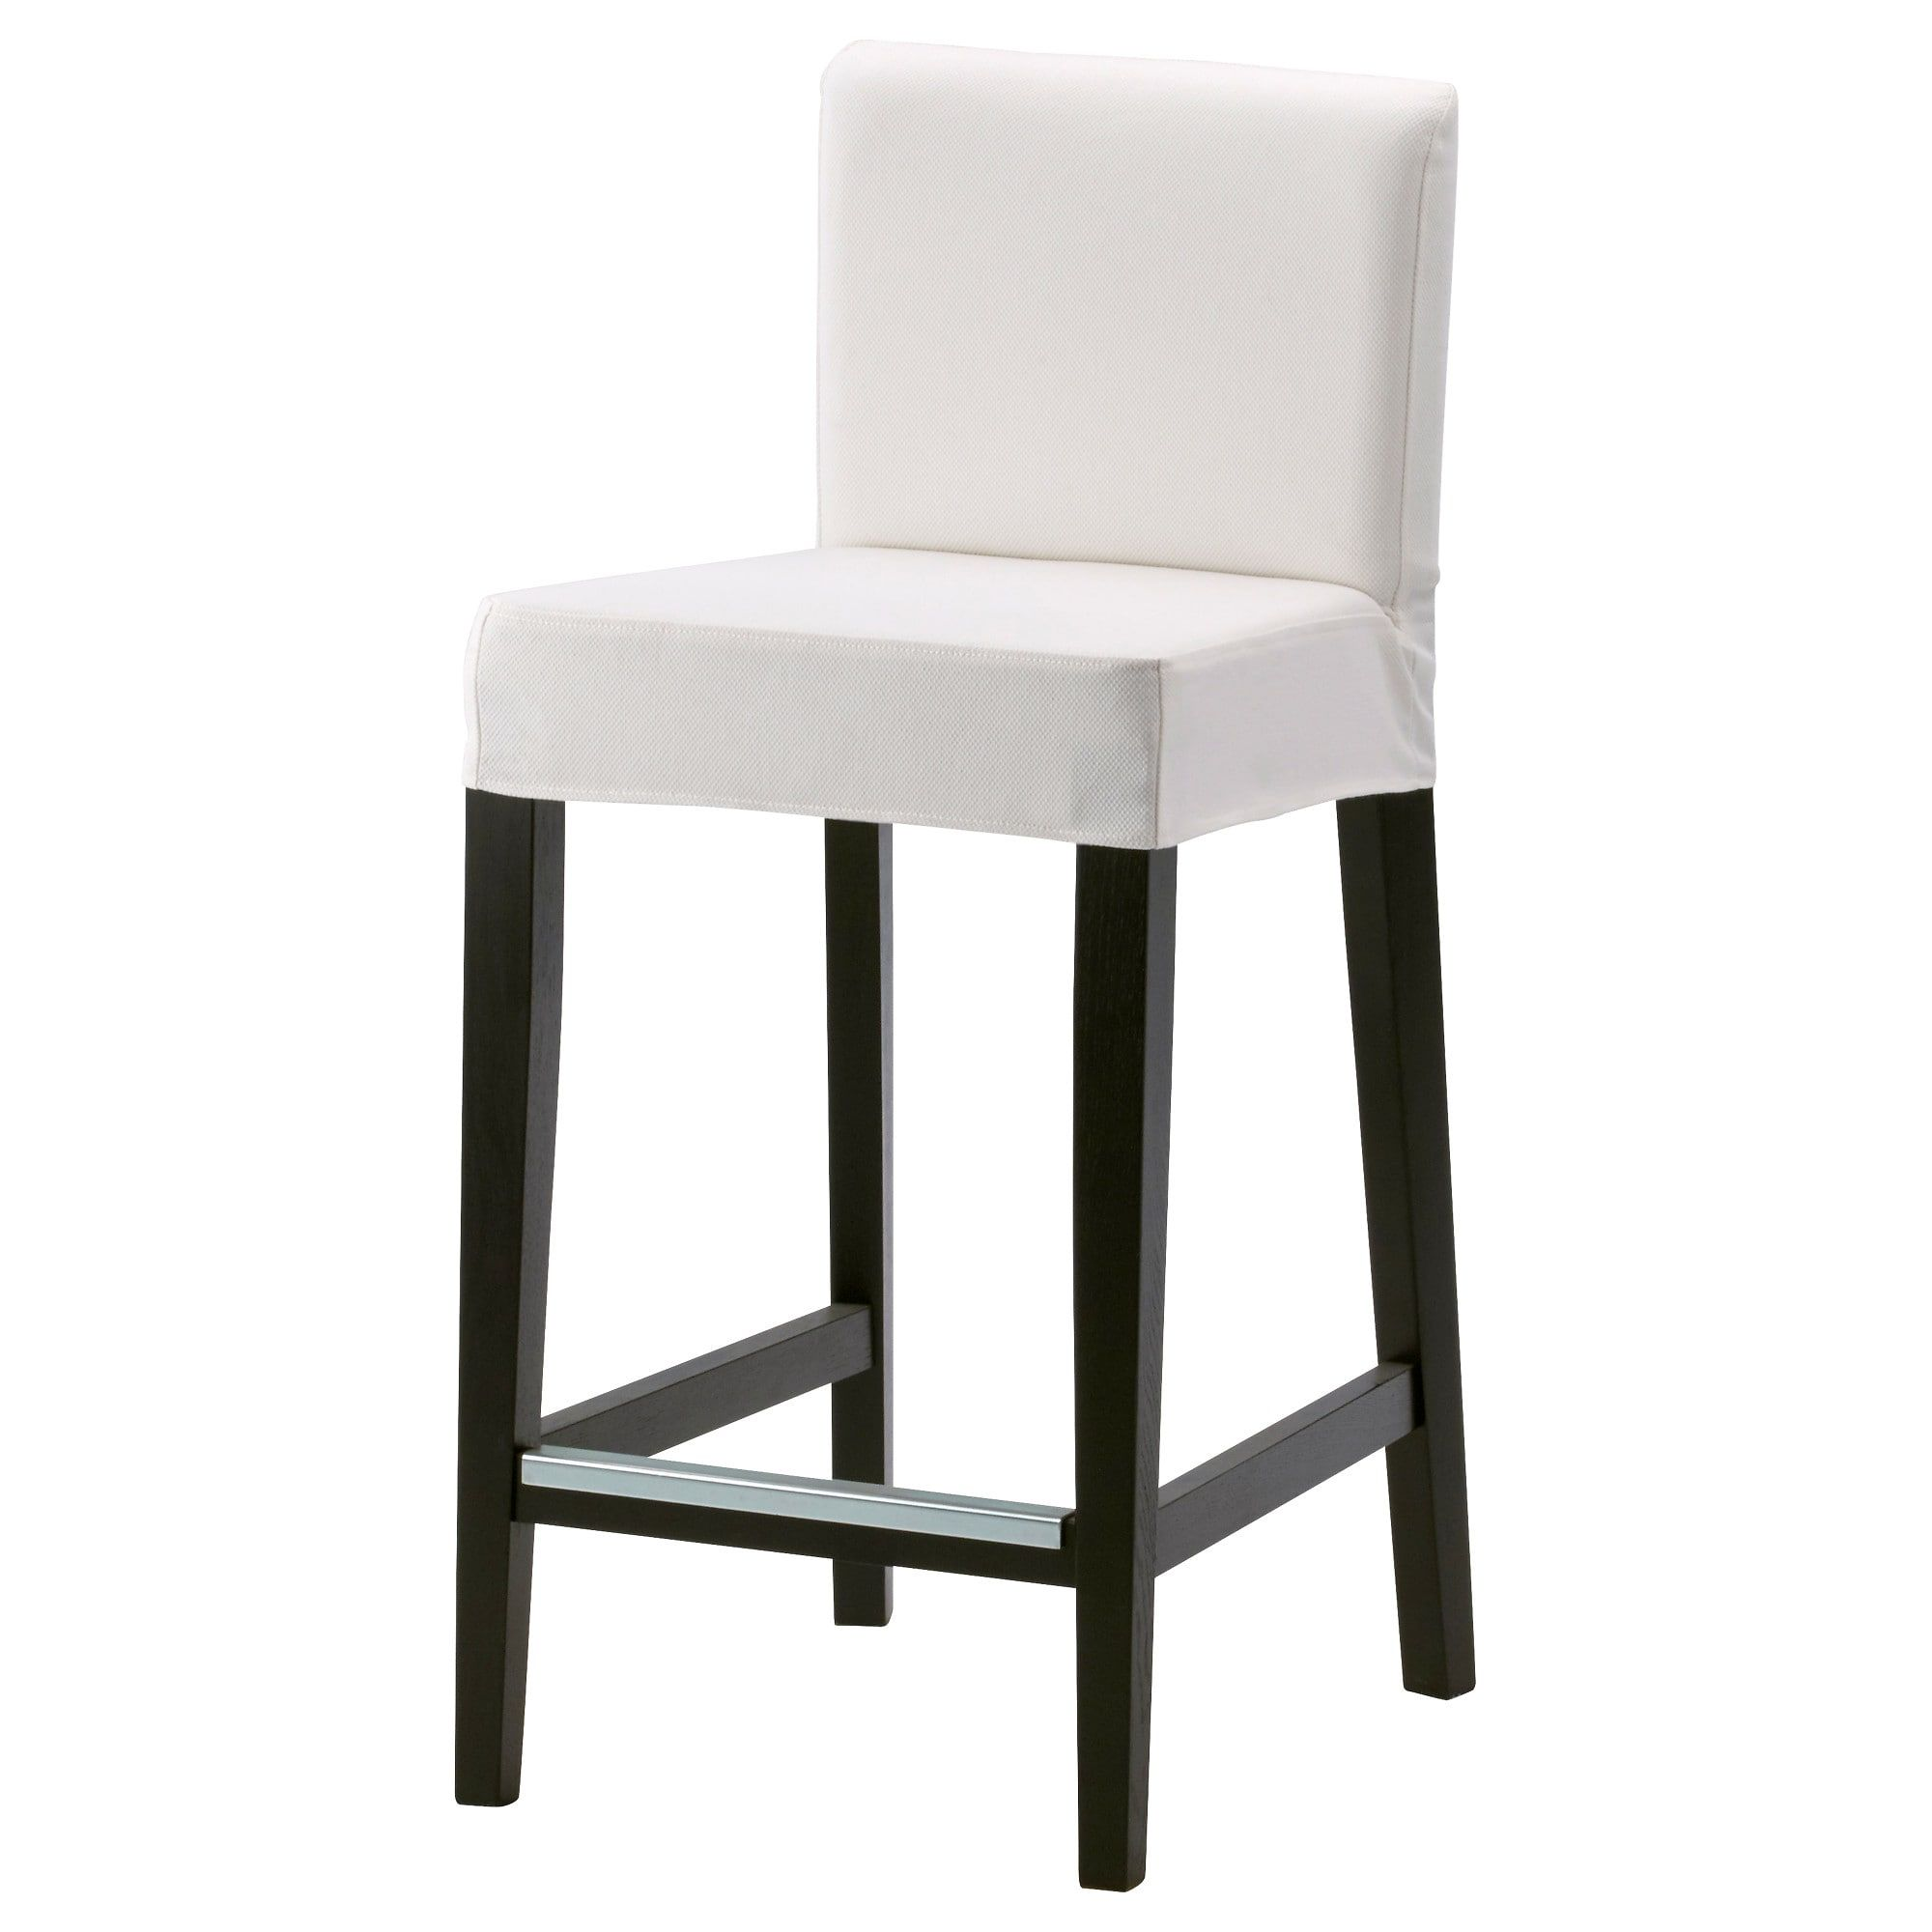 HENRIKSDAL Bar stool with backrest brownblack, Gräsbo